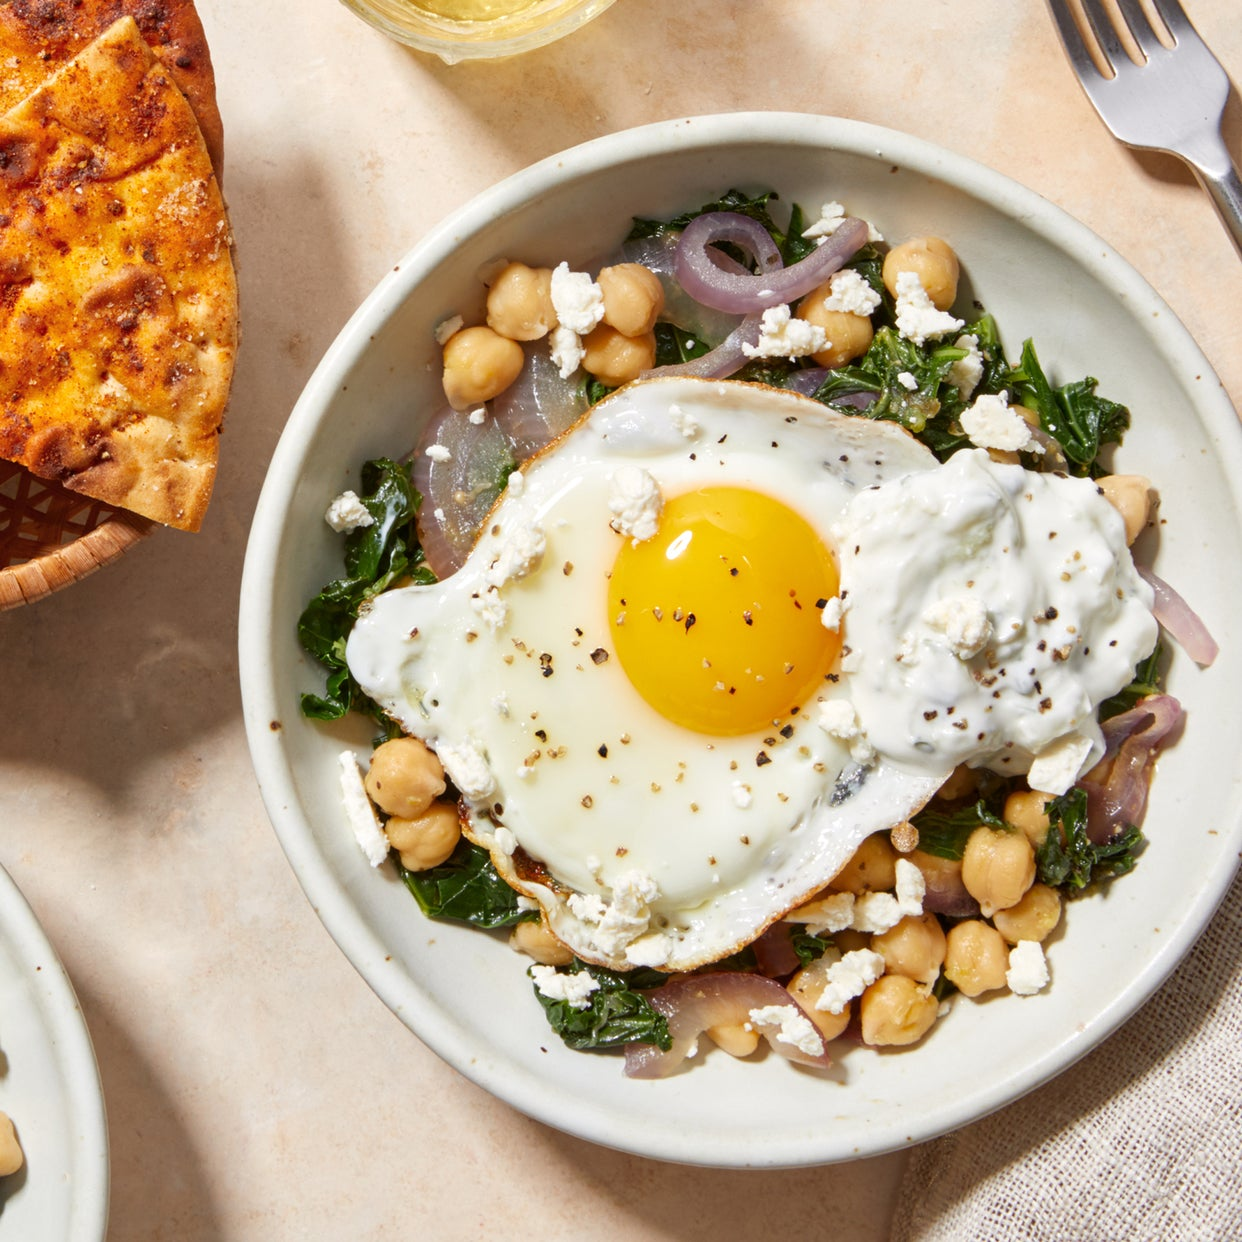 Zesty Chickpea & Kale Sauté with Tzatziki & A Sunny Side-Up Egg